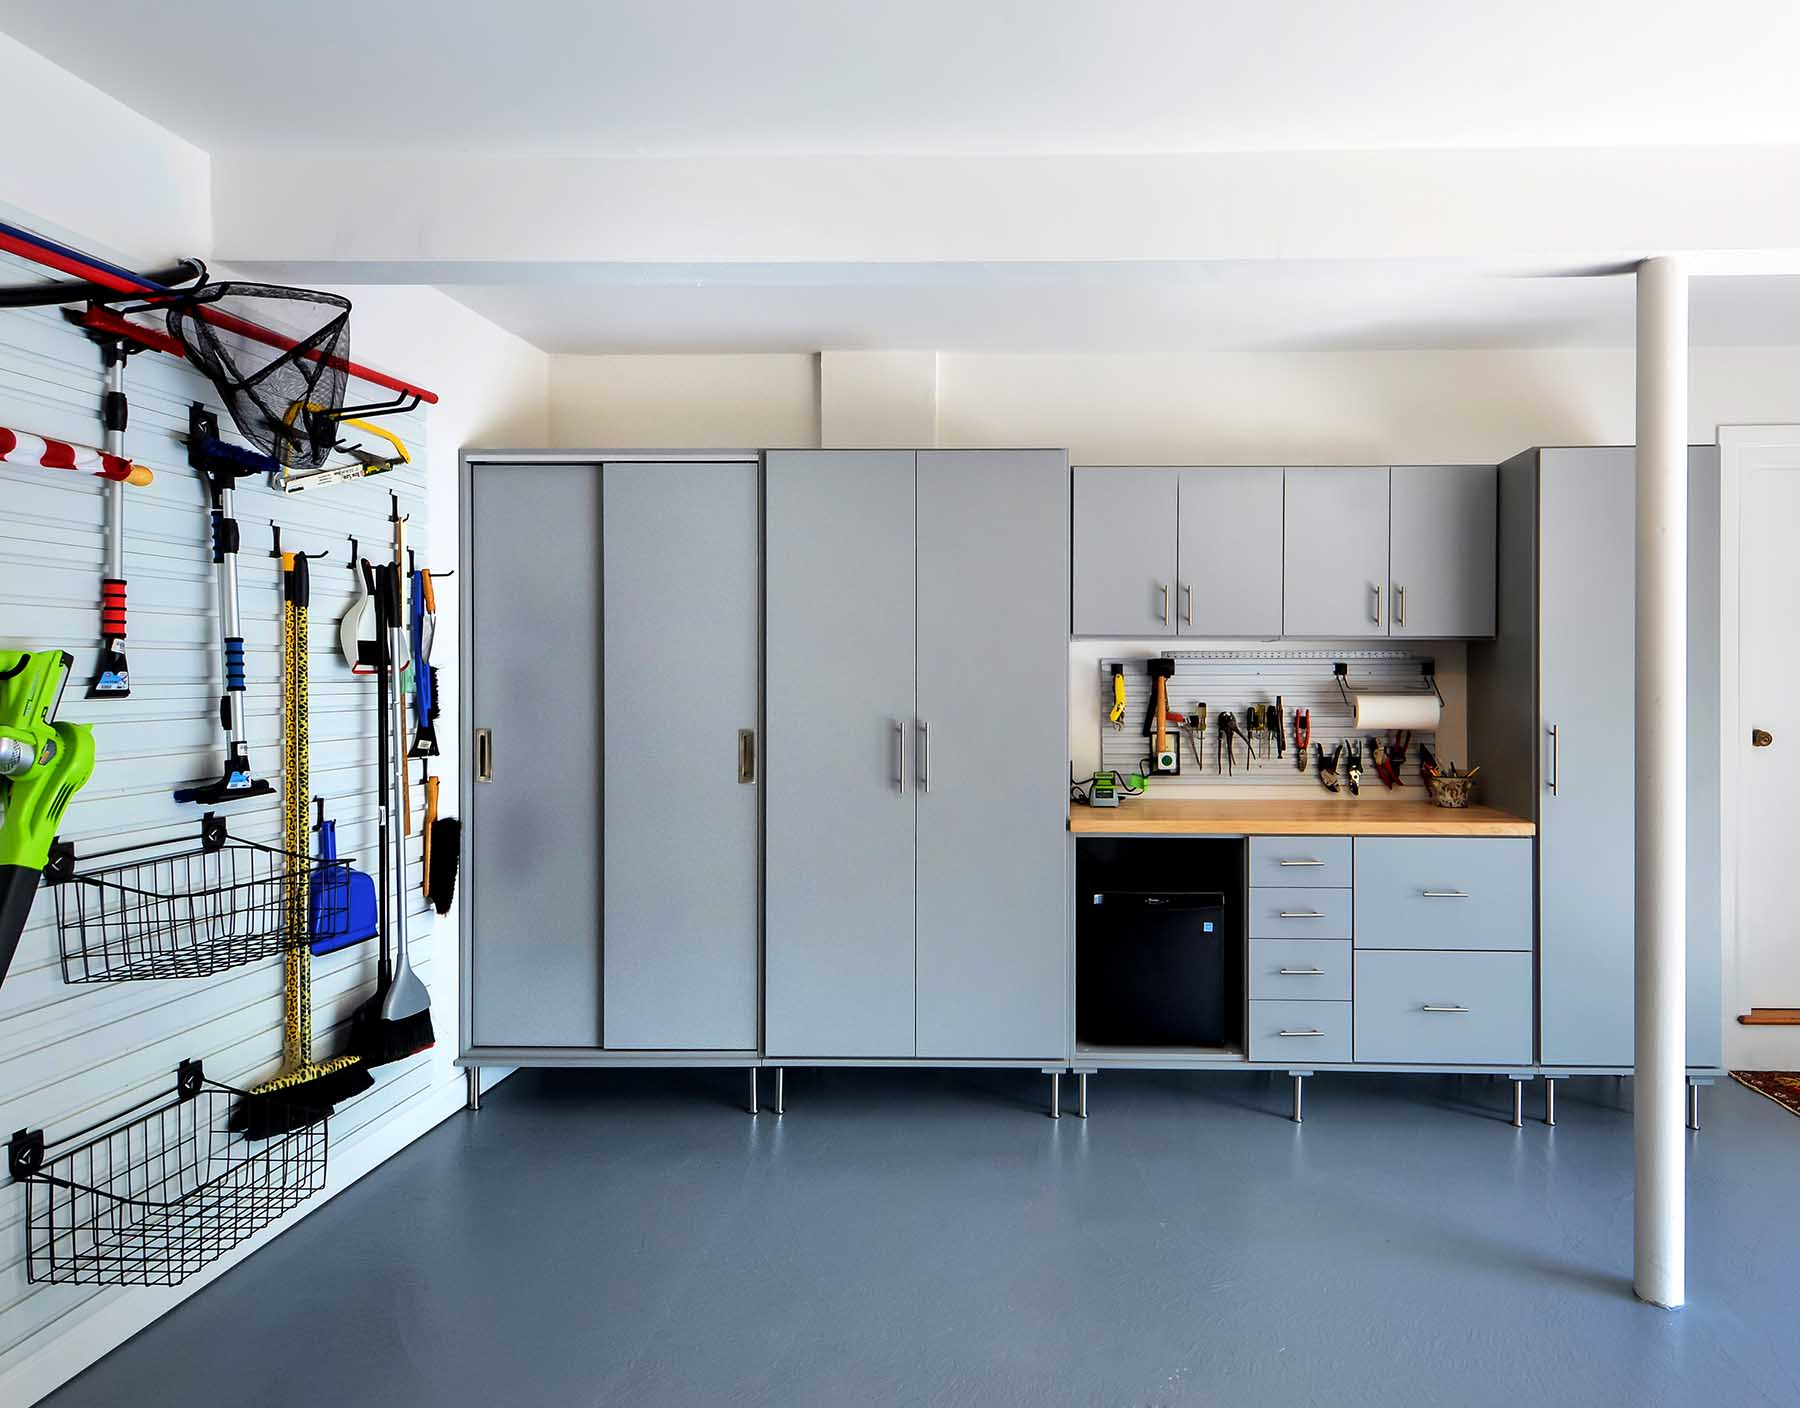 Organized garage cabinets and wall unit